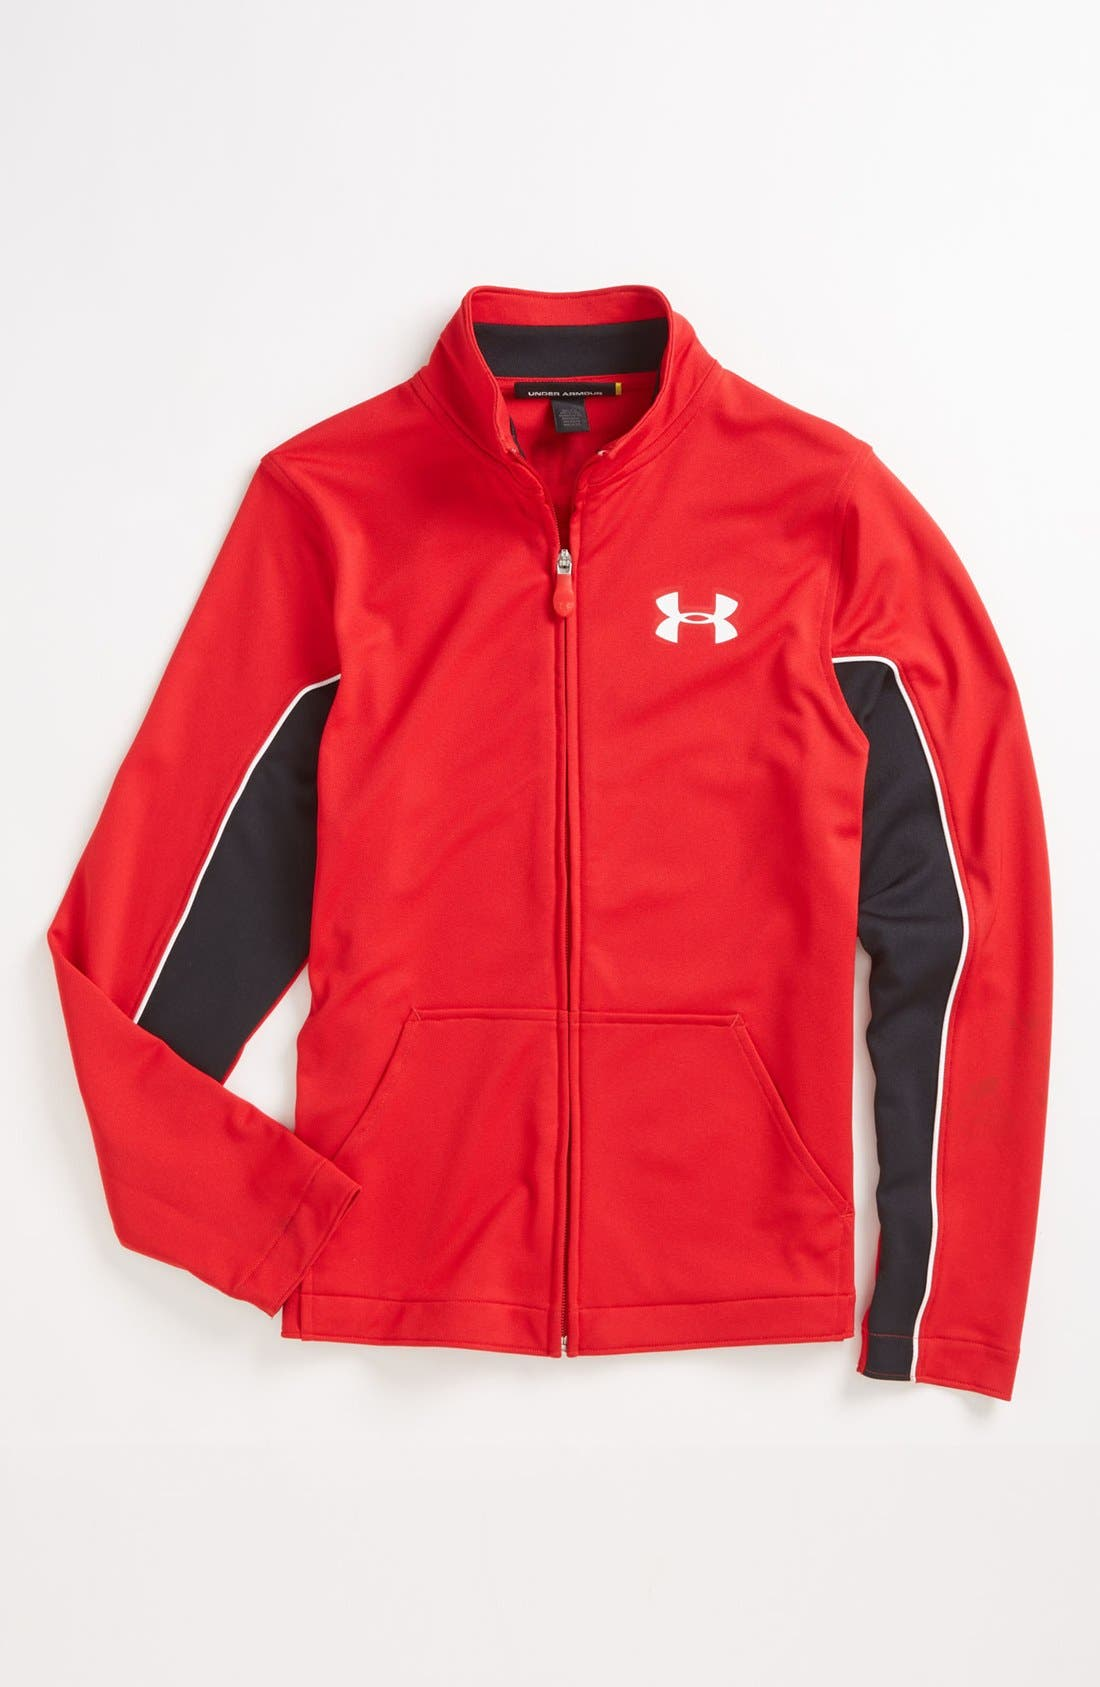 Alternate Image 1 Selected - Under Armour 'Accelerate' Warm-Up Jacket (Big Boys)